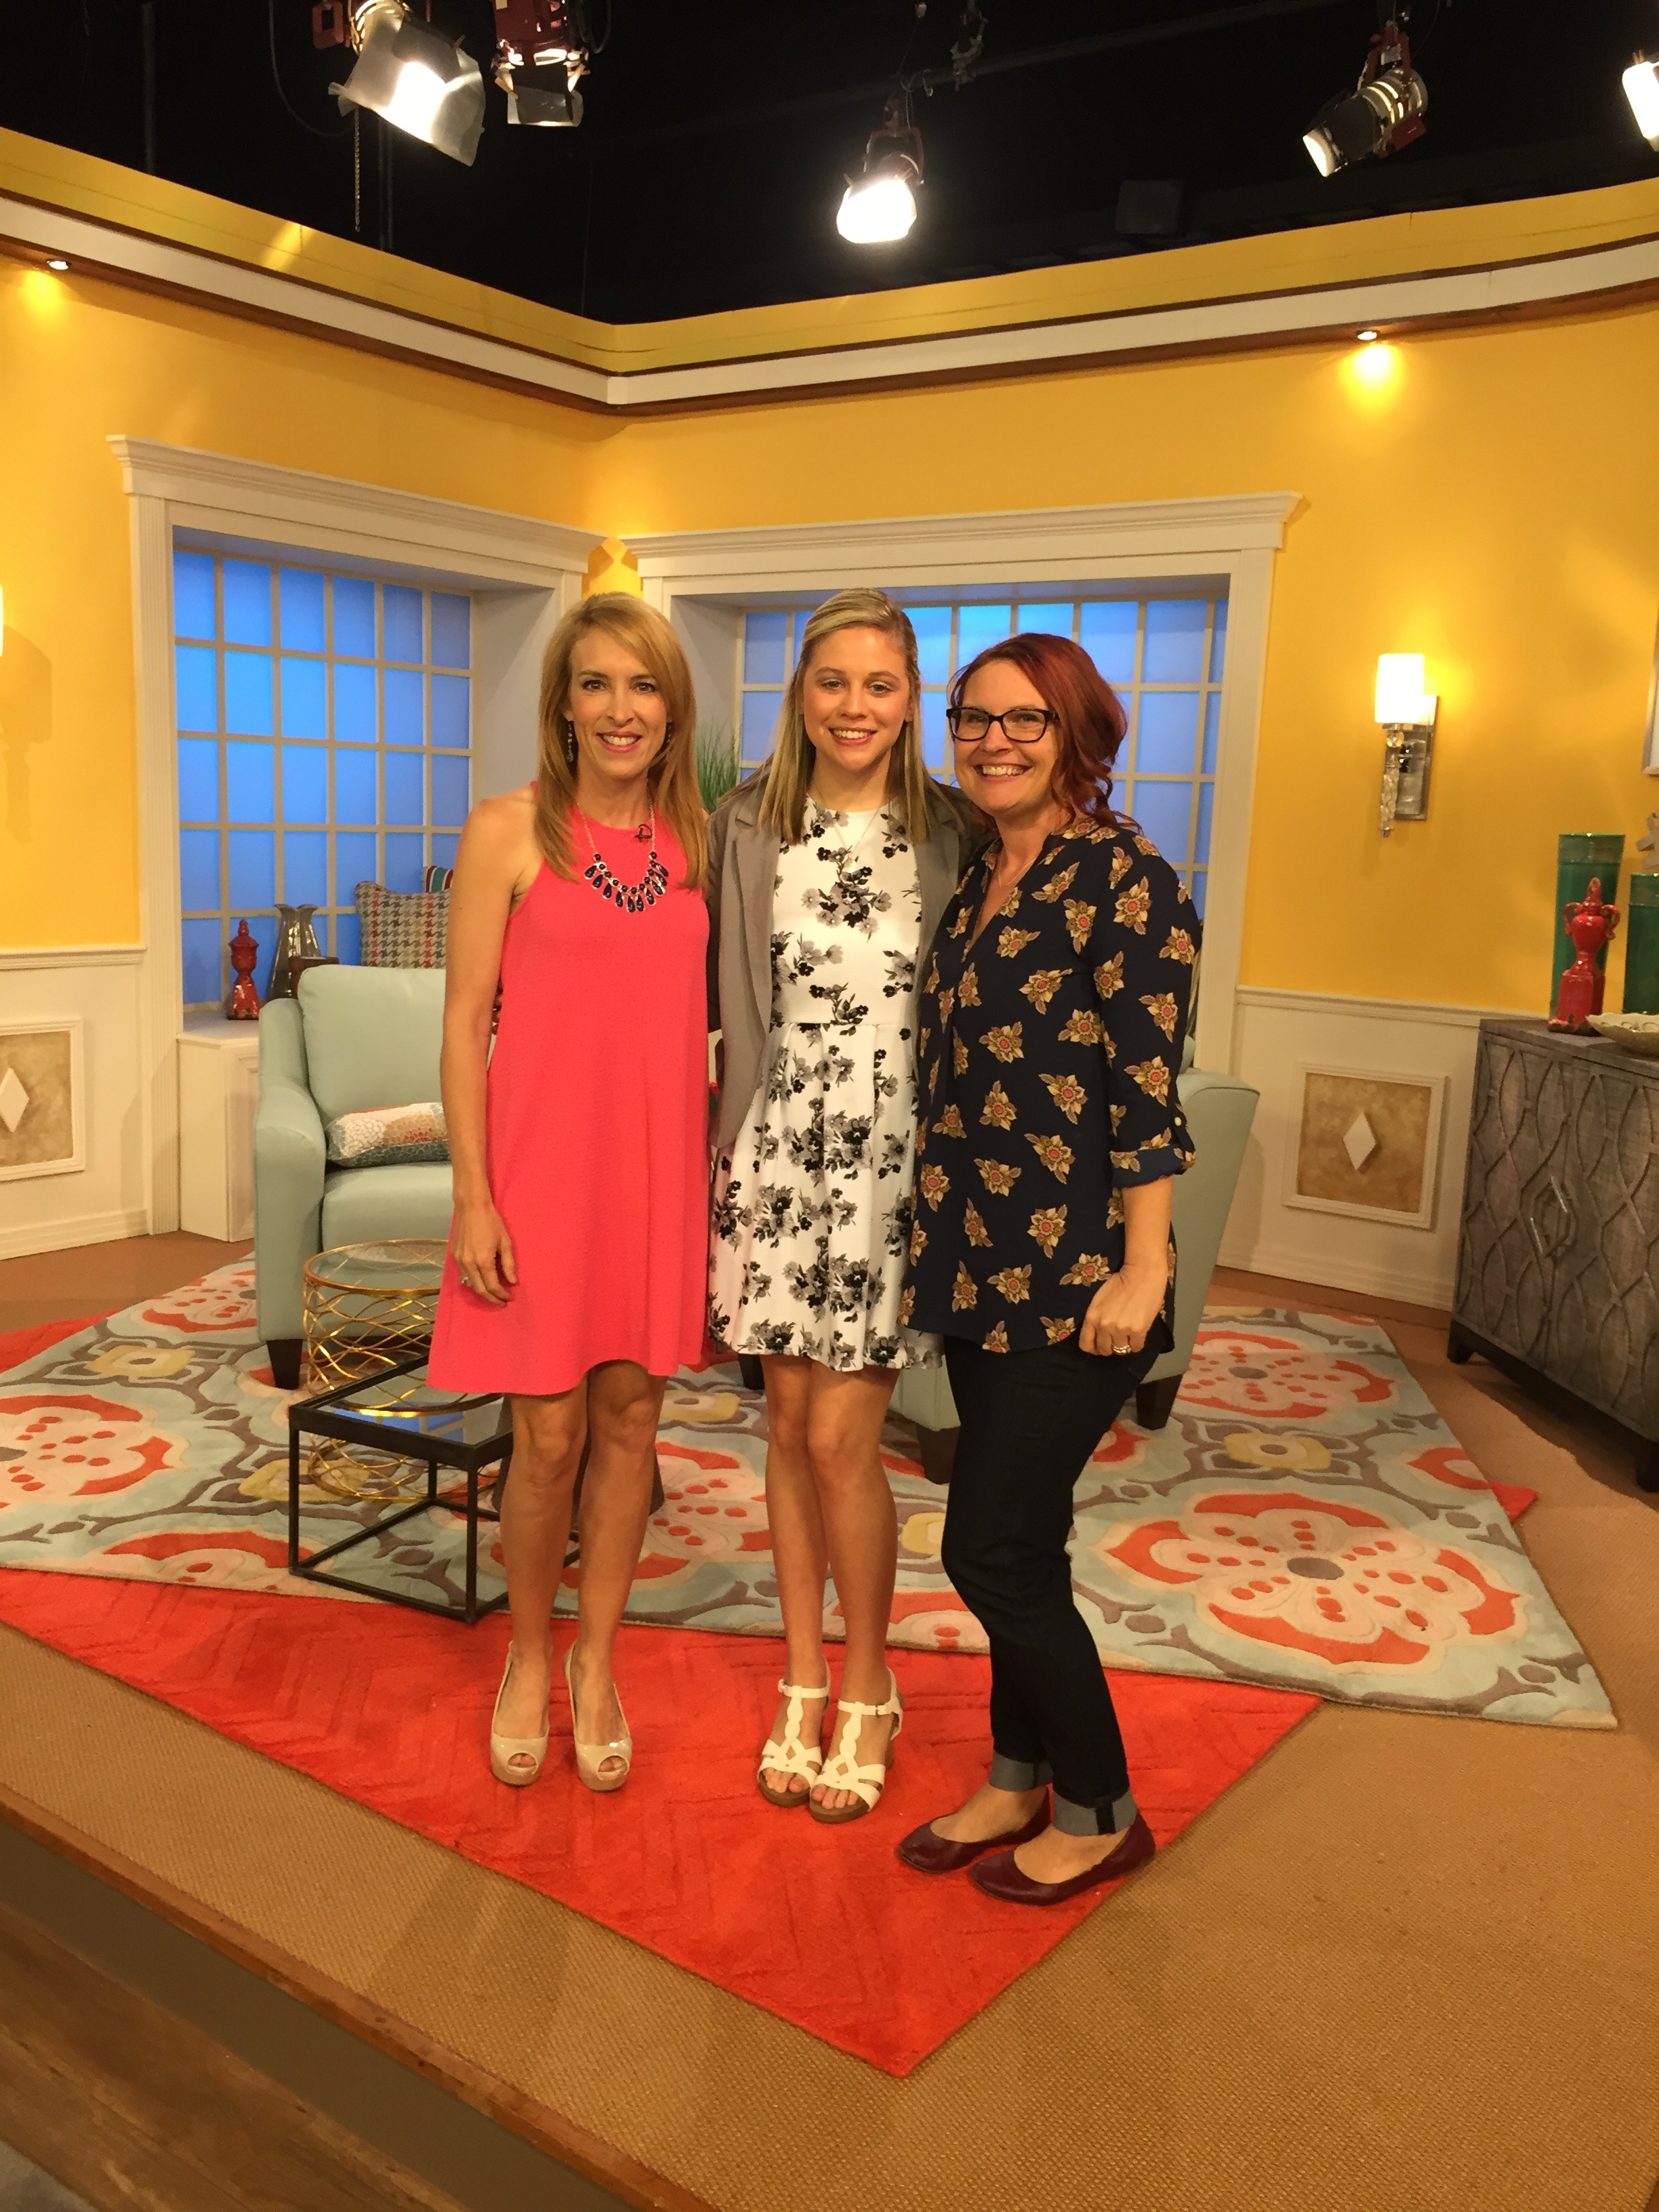 Makayla and I talking about her Beauty Revived experience on the Good Morning Tampa Bay show!  Watch HERE!